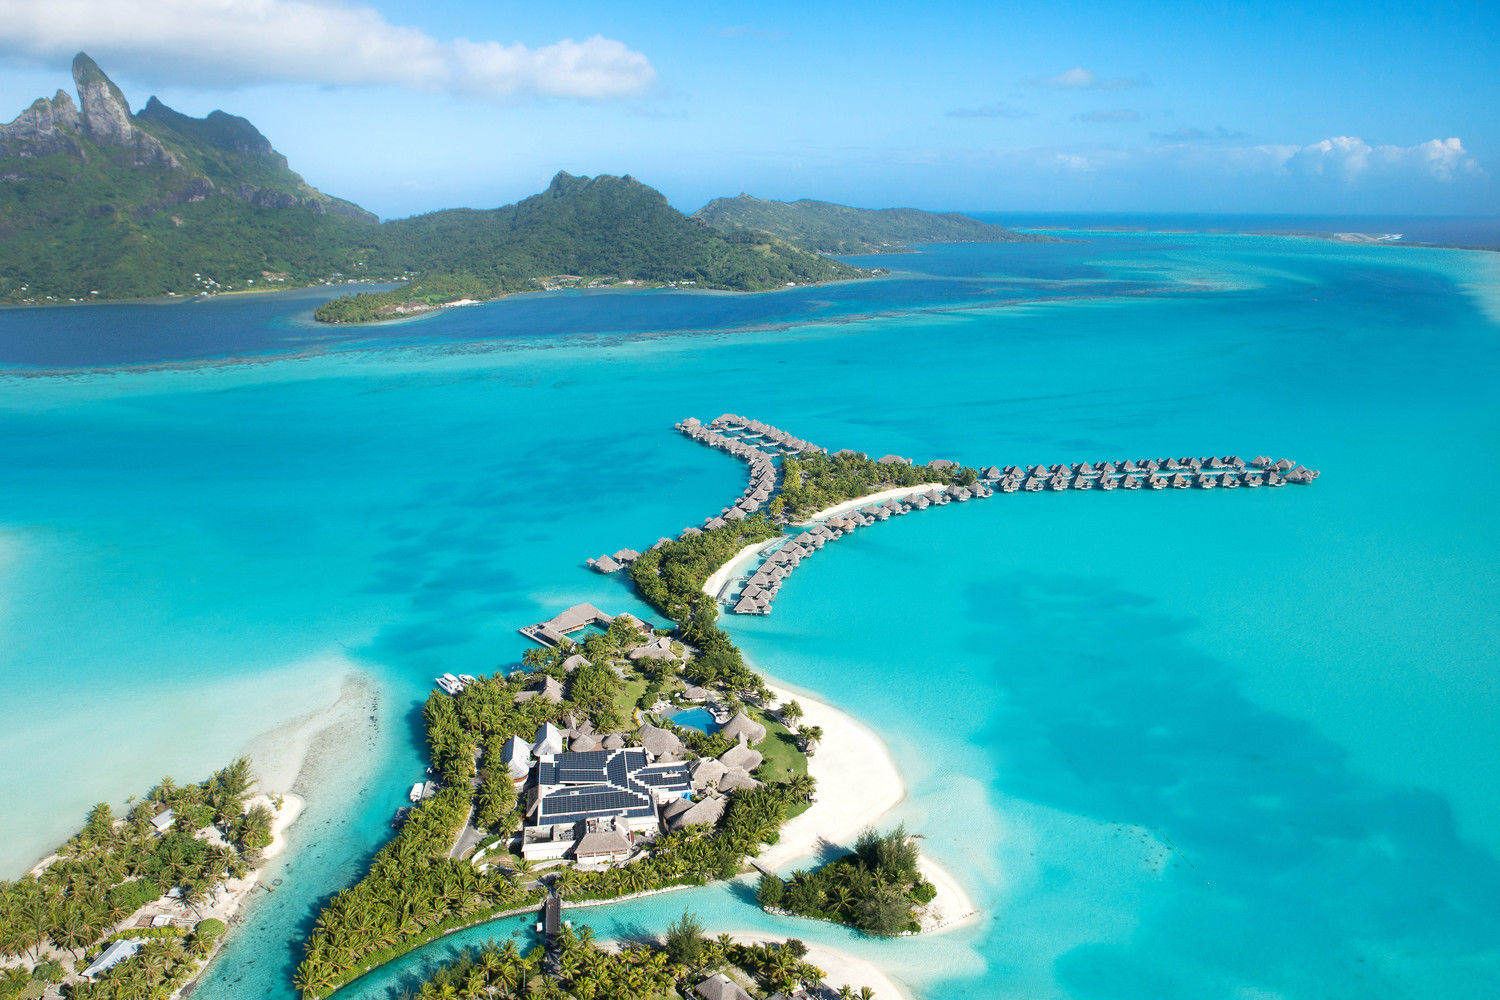 St. Regis Bora Bora Resort dicas Viaje Global